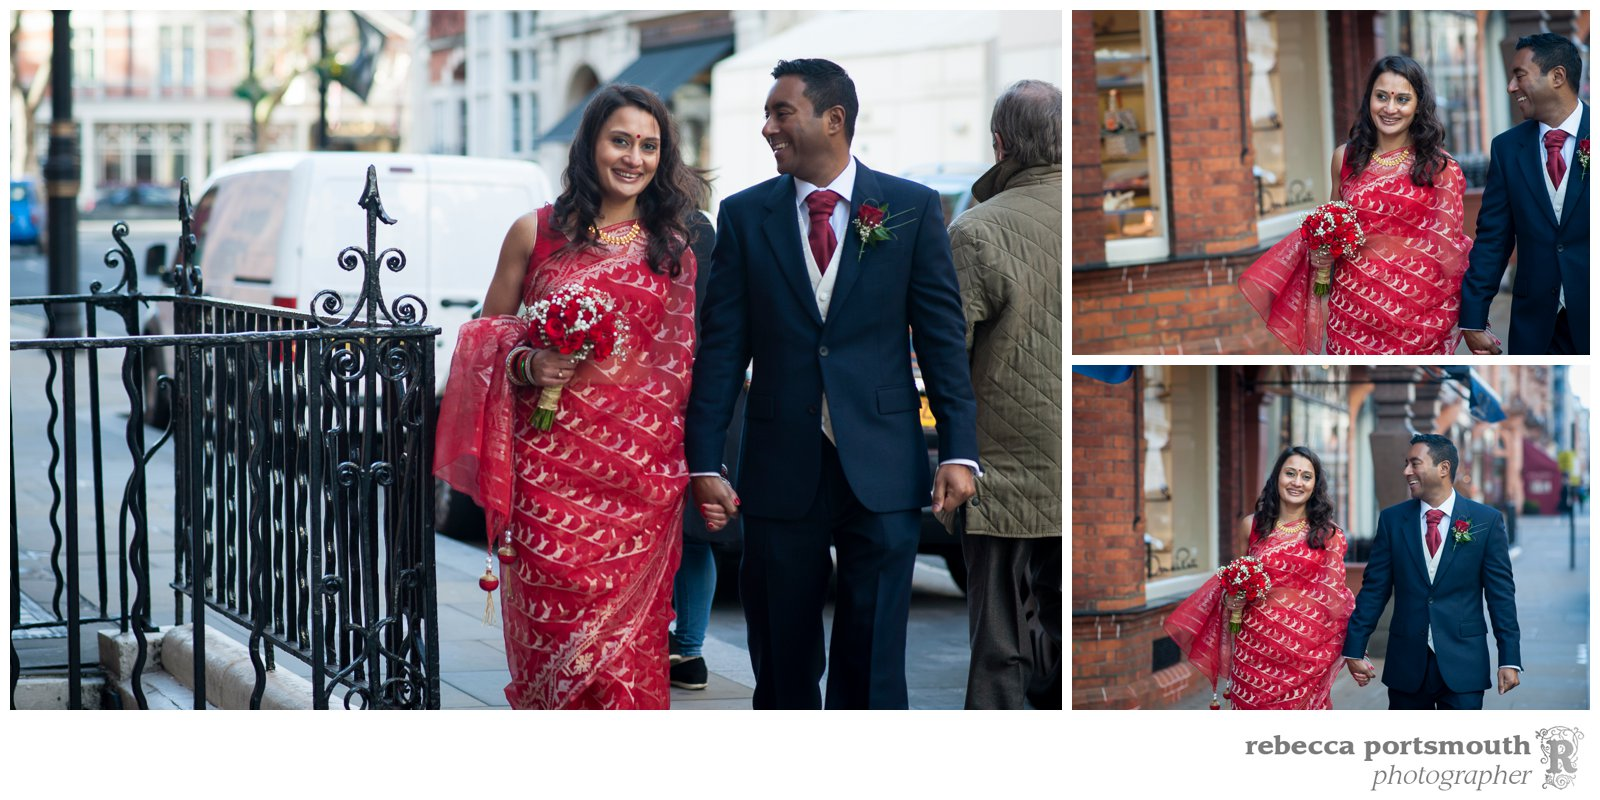 Newly-wedded bride and groom Tas + Ravi stroll through Mount Street and Berkeley Square in London's Mayfair on the way to their wedding breakfast.